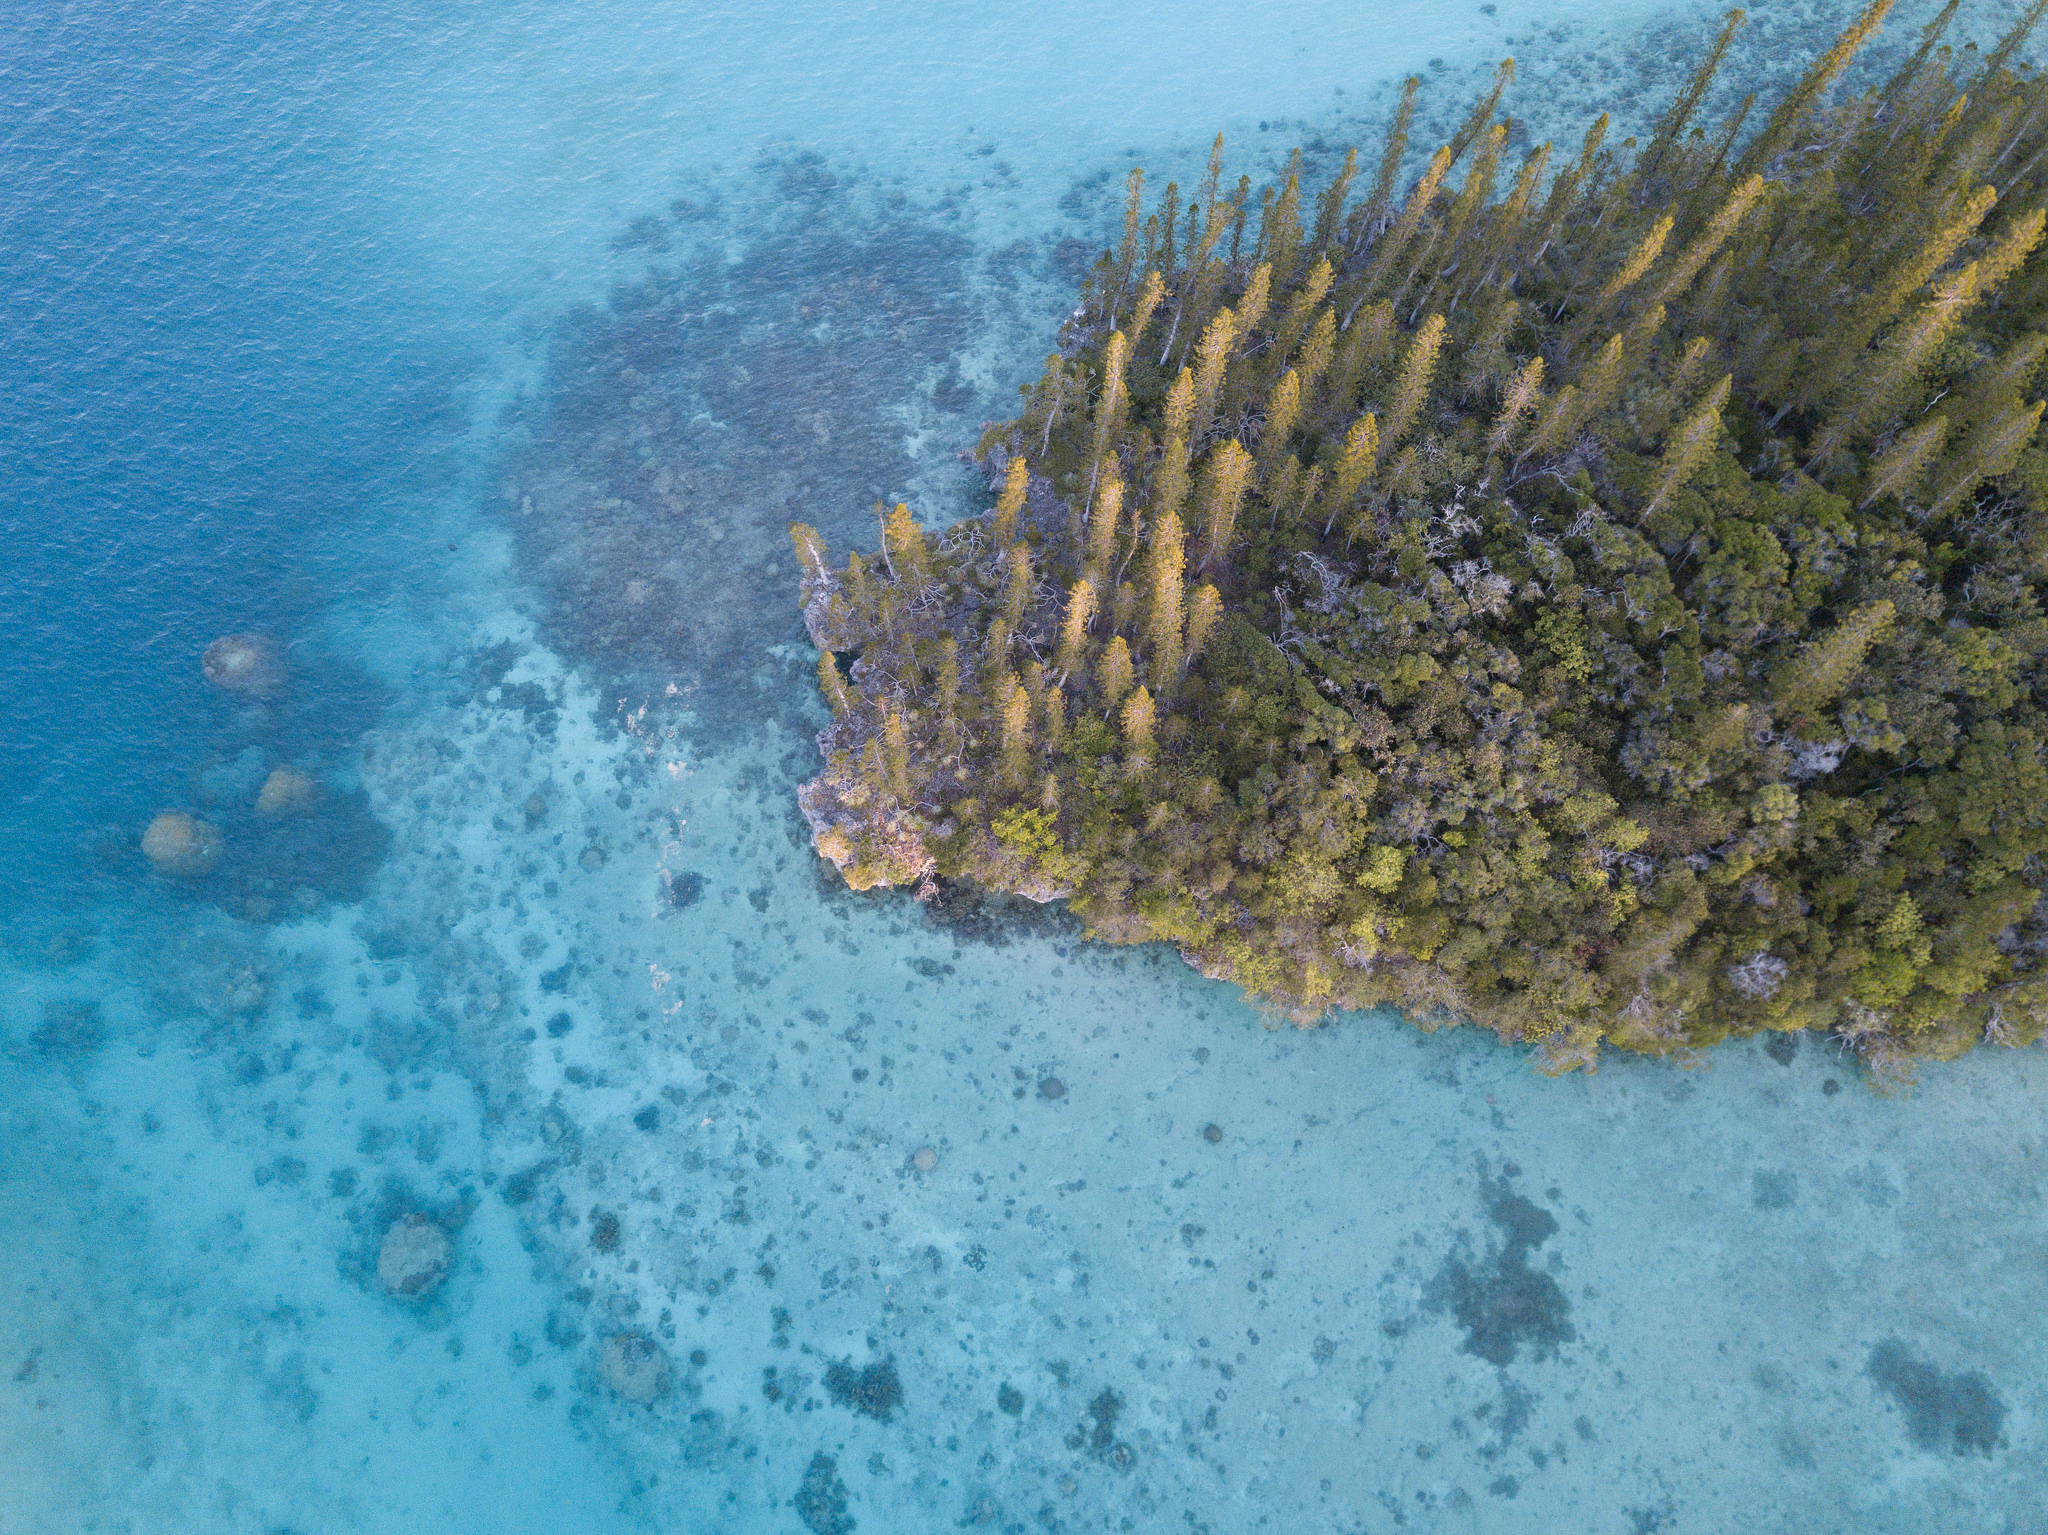 New Caledonia Sights and Attractions- Isle of Pines, New Caledonia